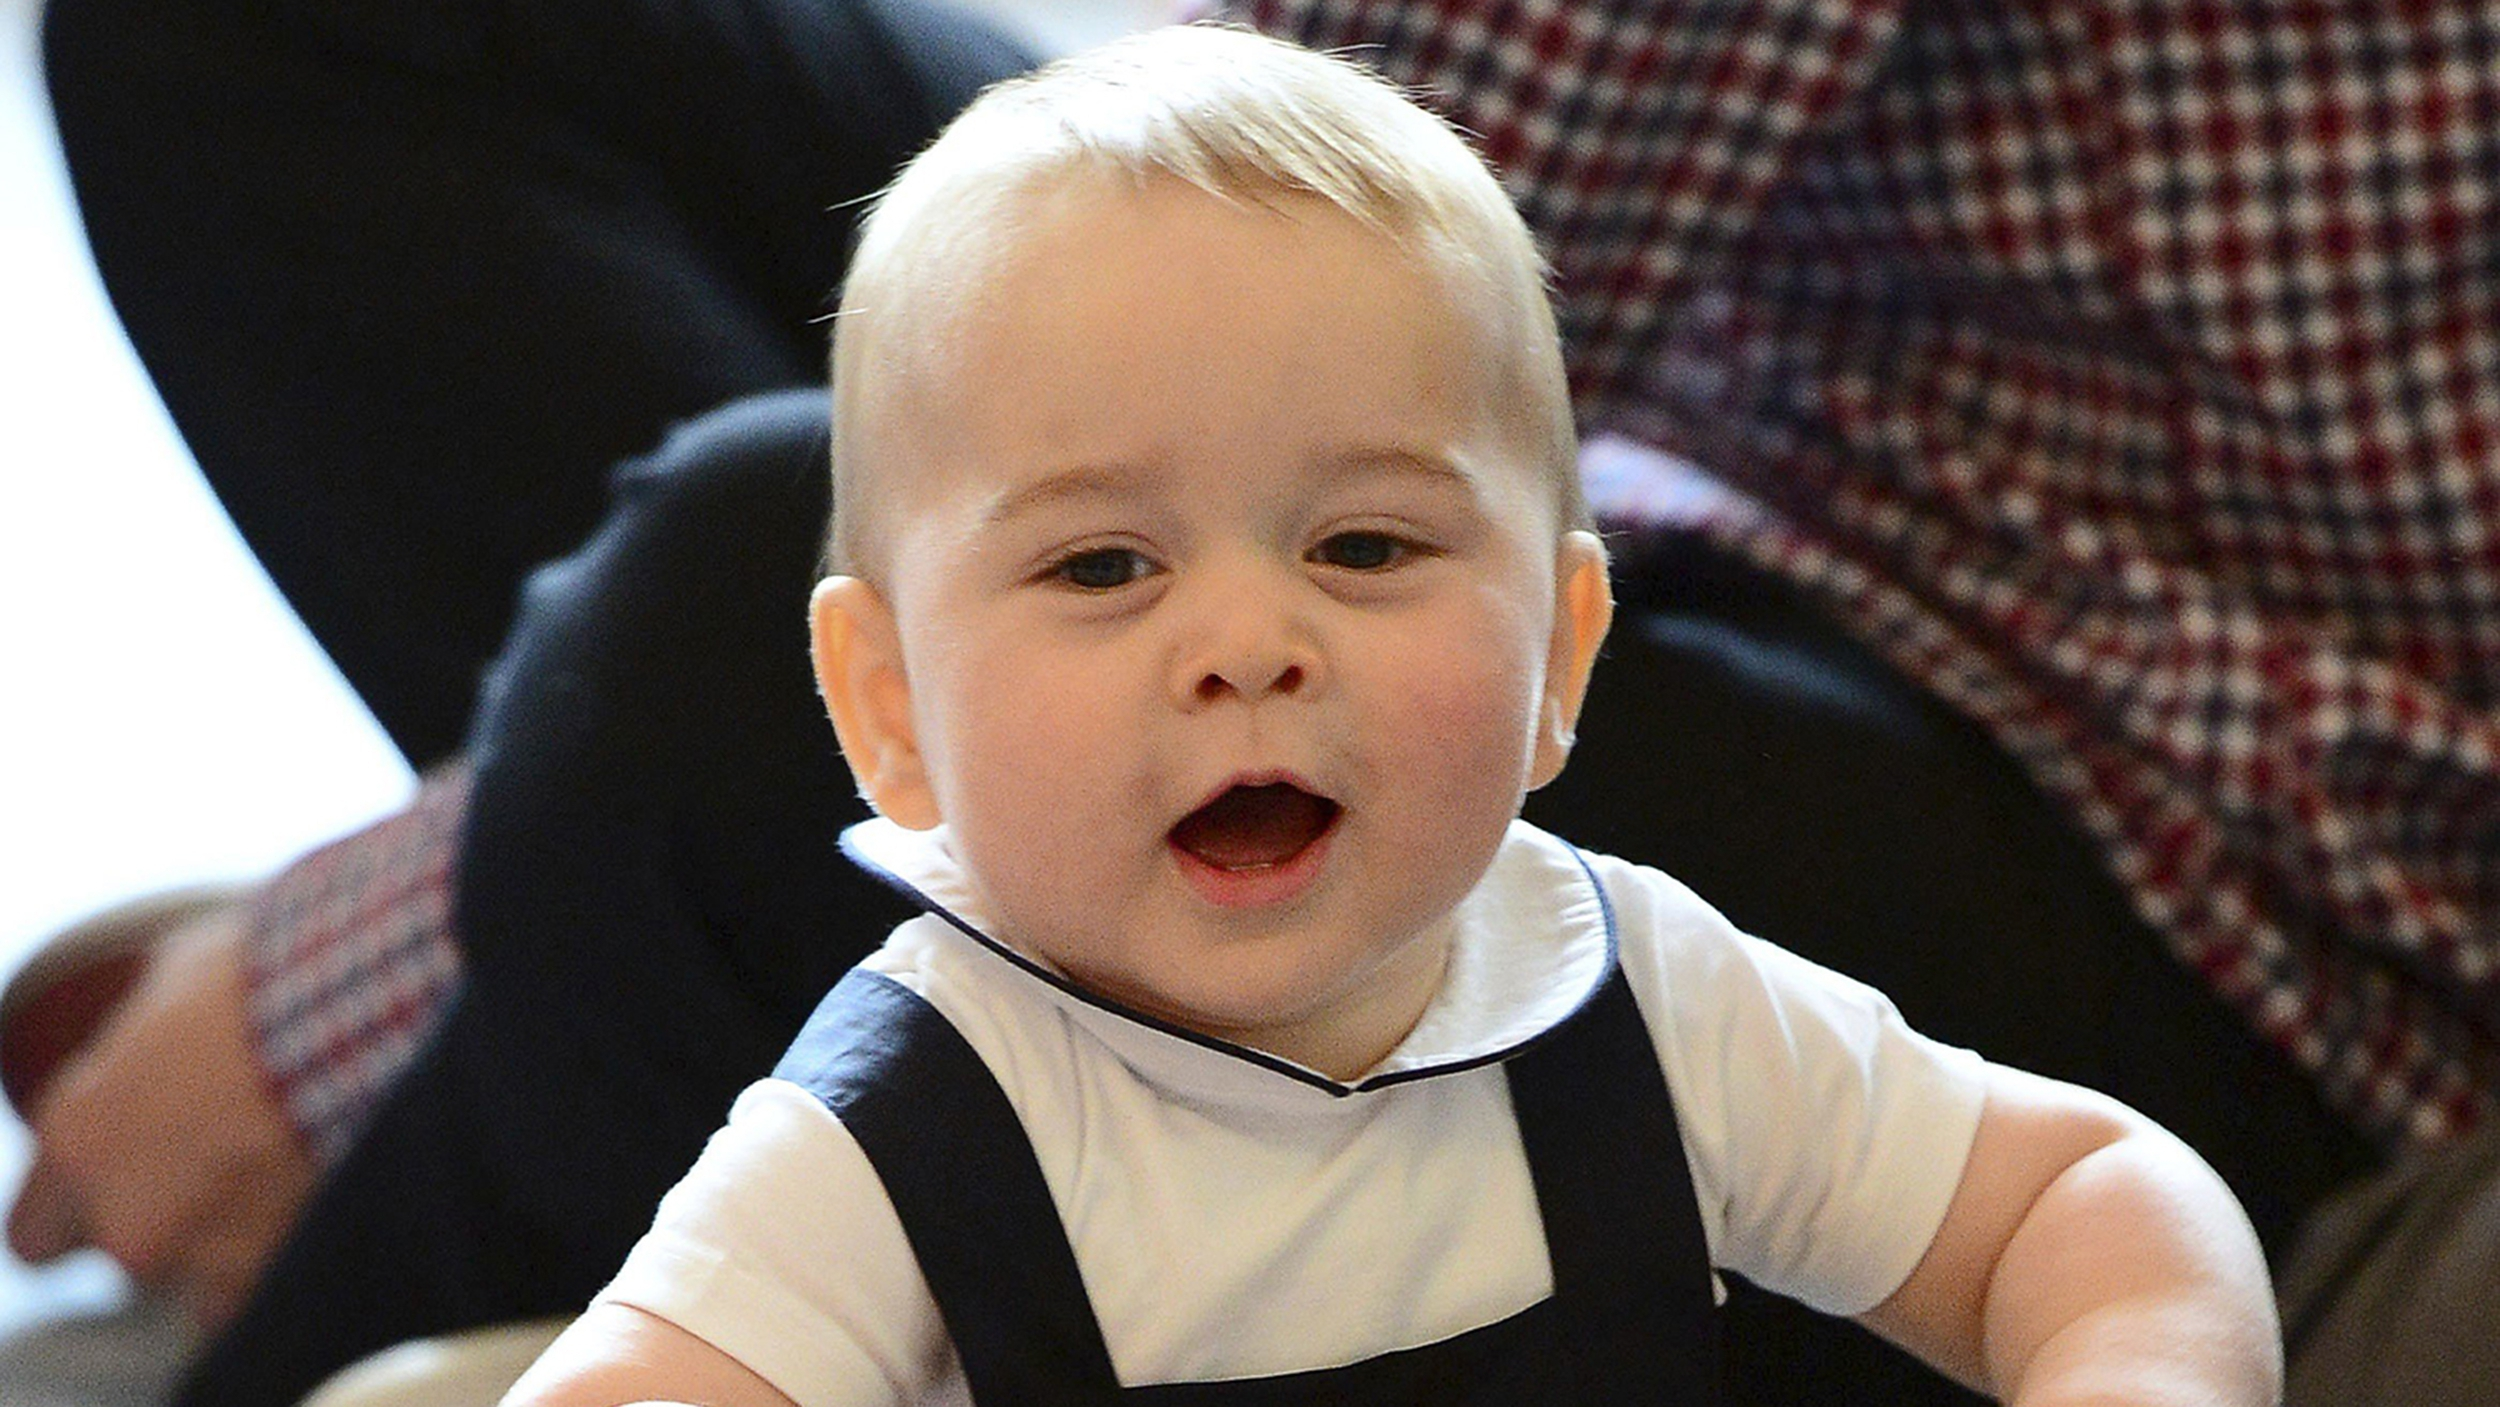 Prince George Wallpapers Hd